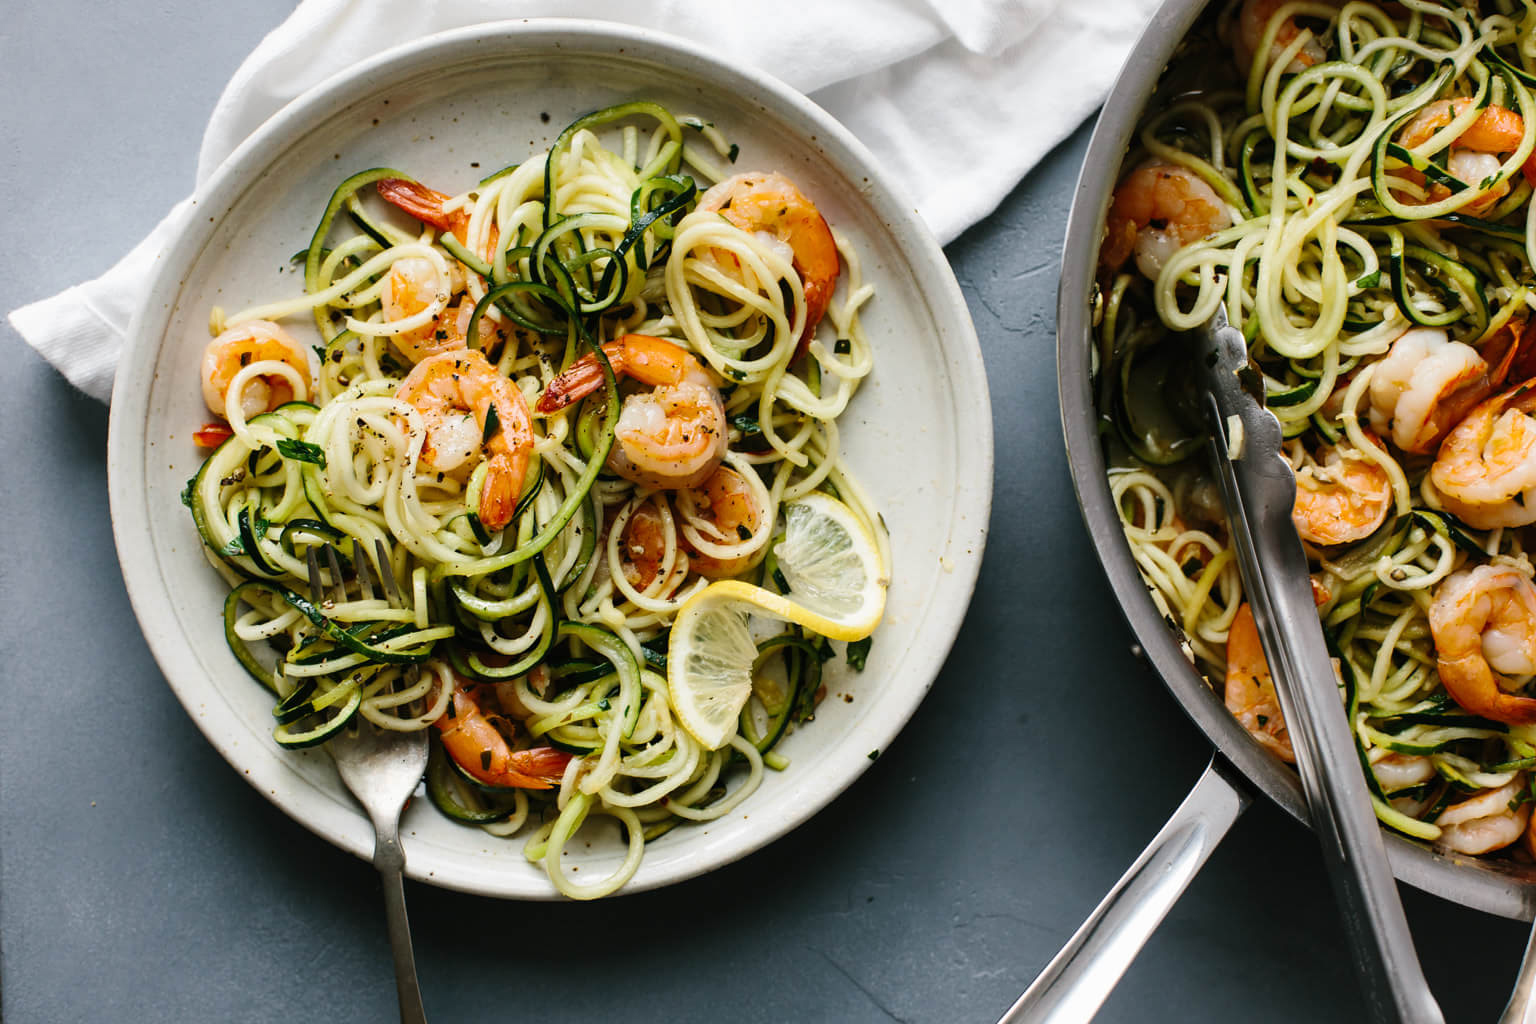 Easy healthy dinner recipes: Zucchini Pasta With Lemon Garlic Shrimp